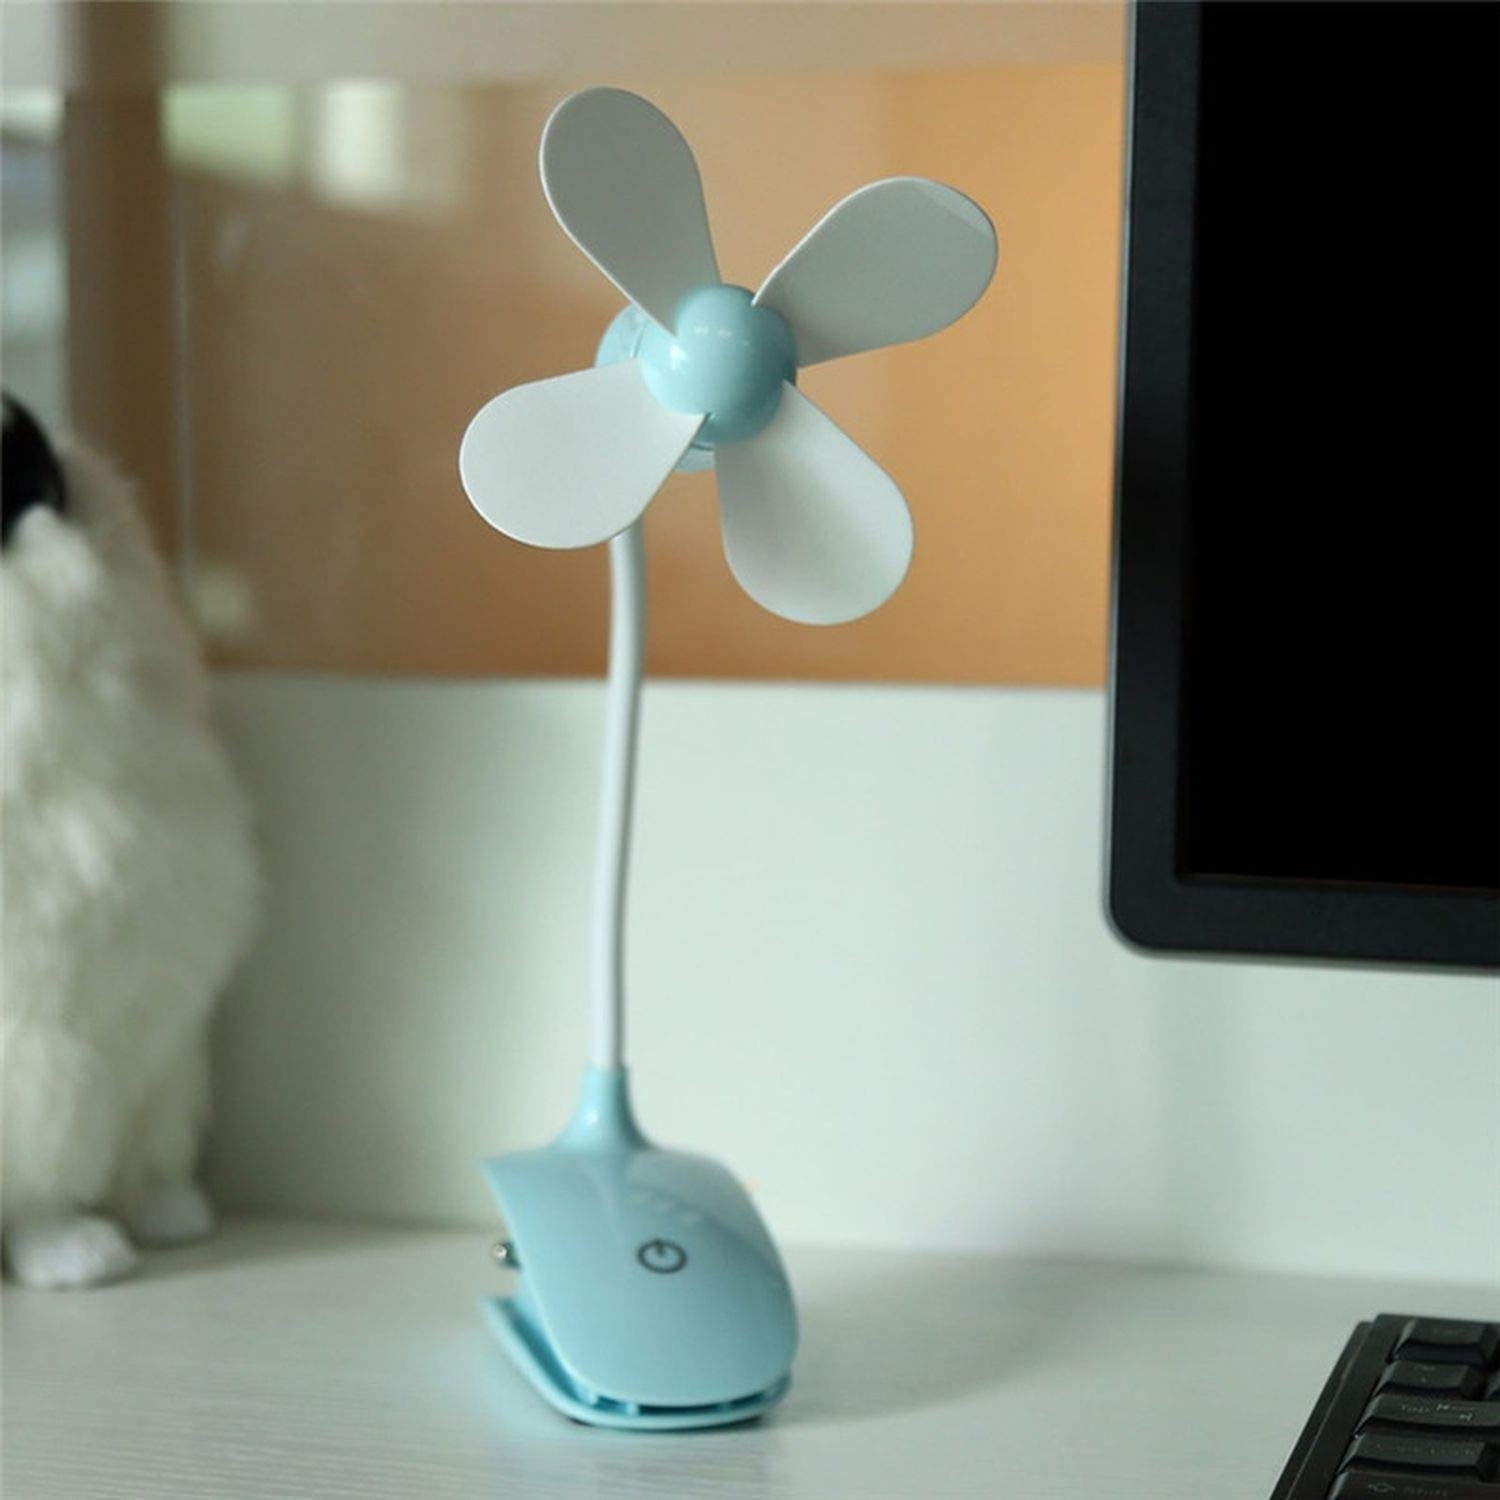 Mini Portable Fan USB Rechargeable Touch Switch Electric Fan Table Household Air Conditioning Baby Carriage Clip Fan,Blue